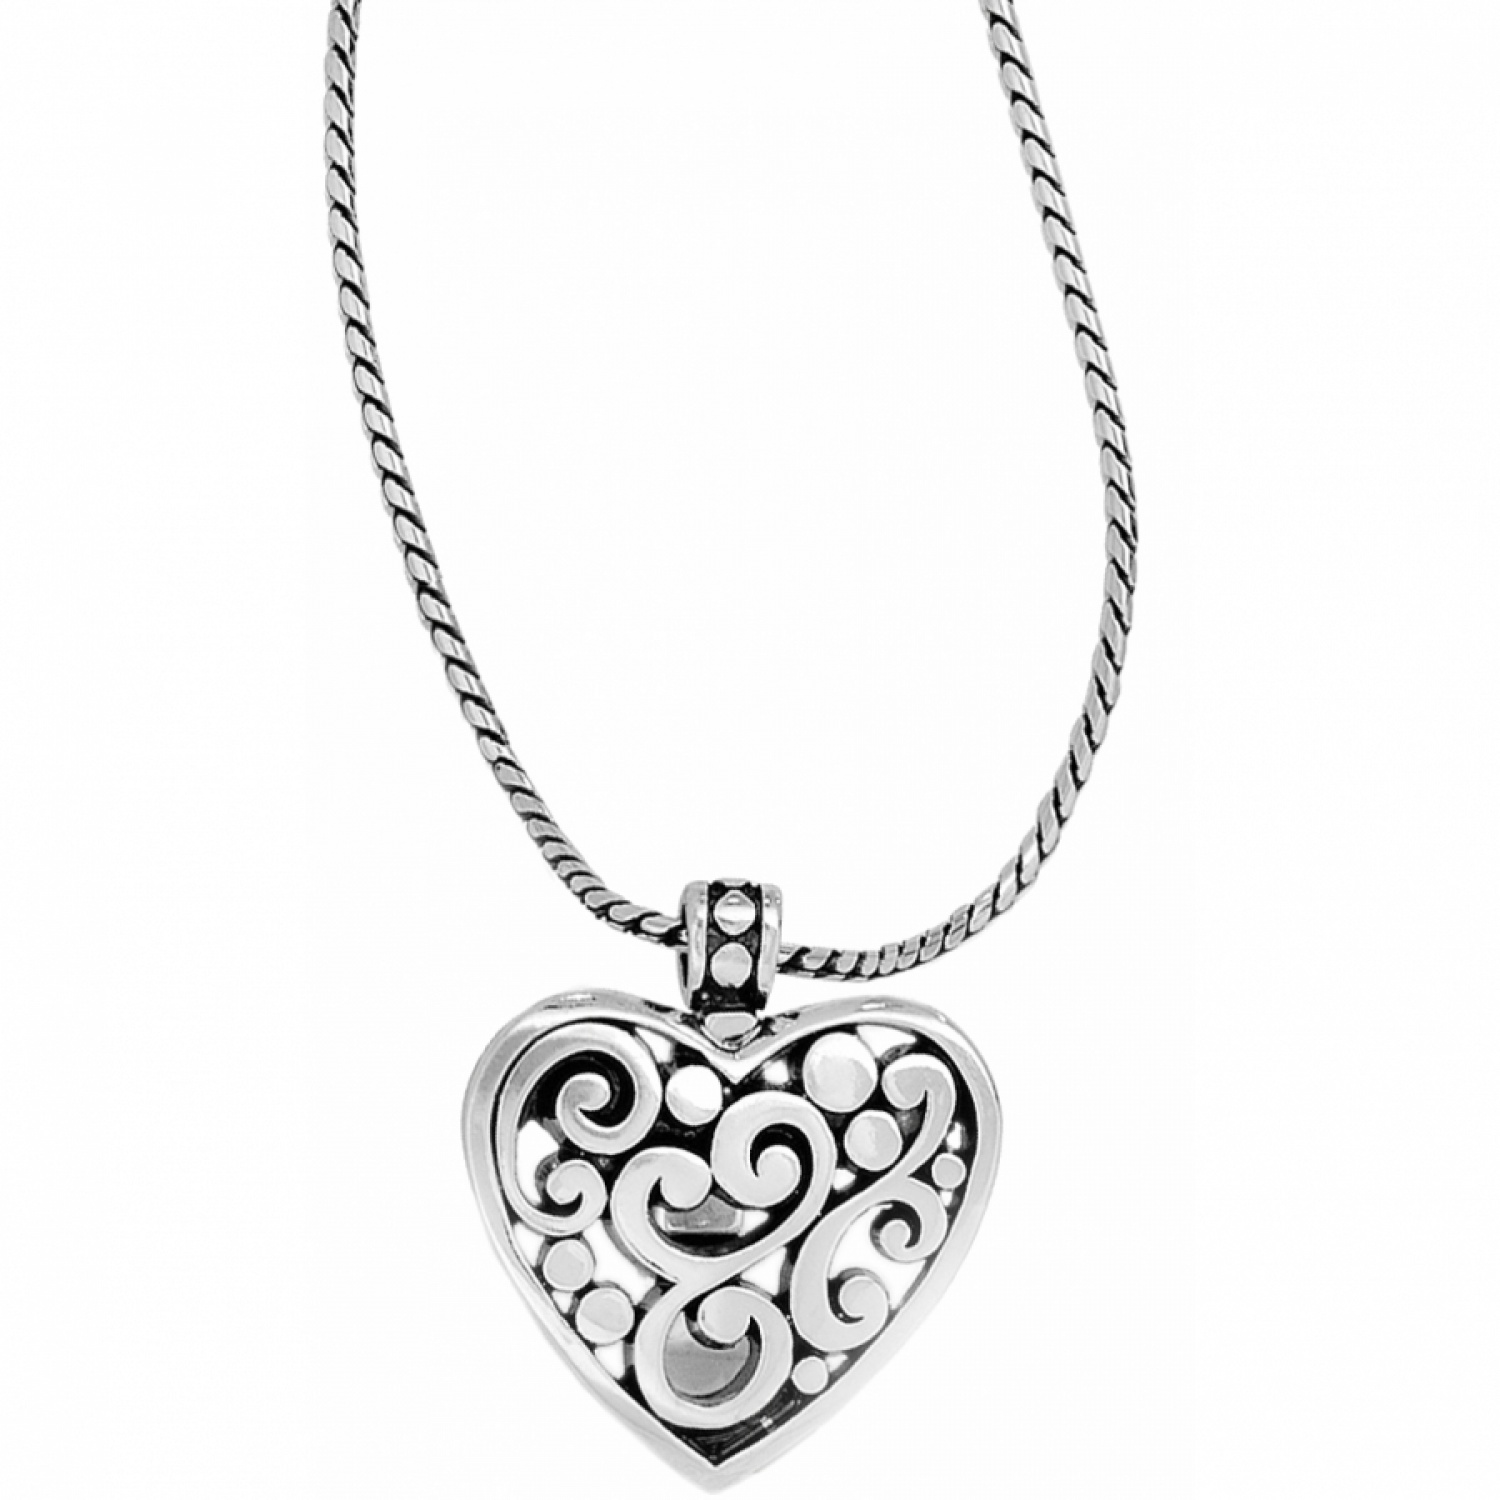 Contempo Contempo Heart Badge Clip Necklace Necklaces